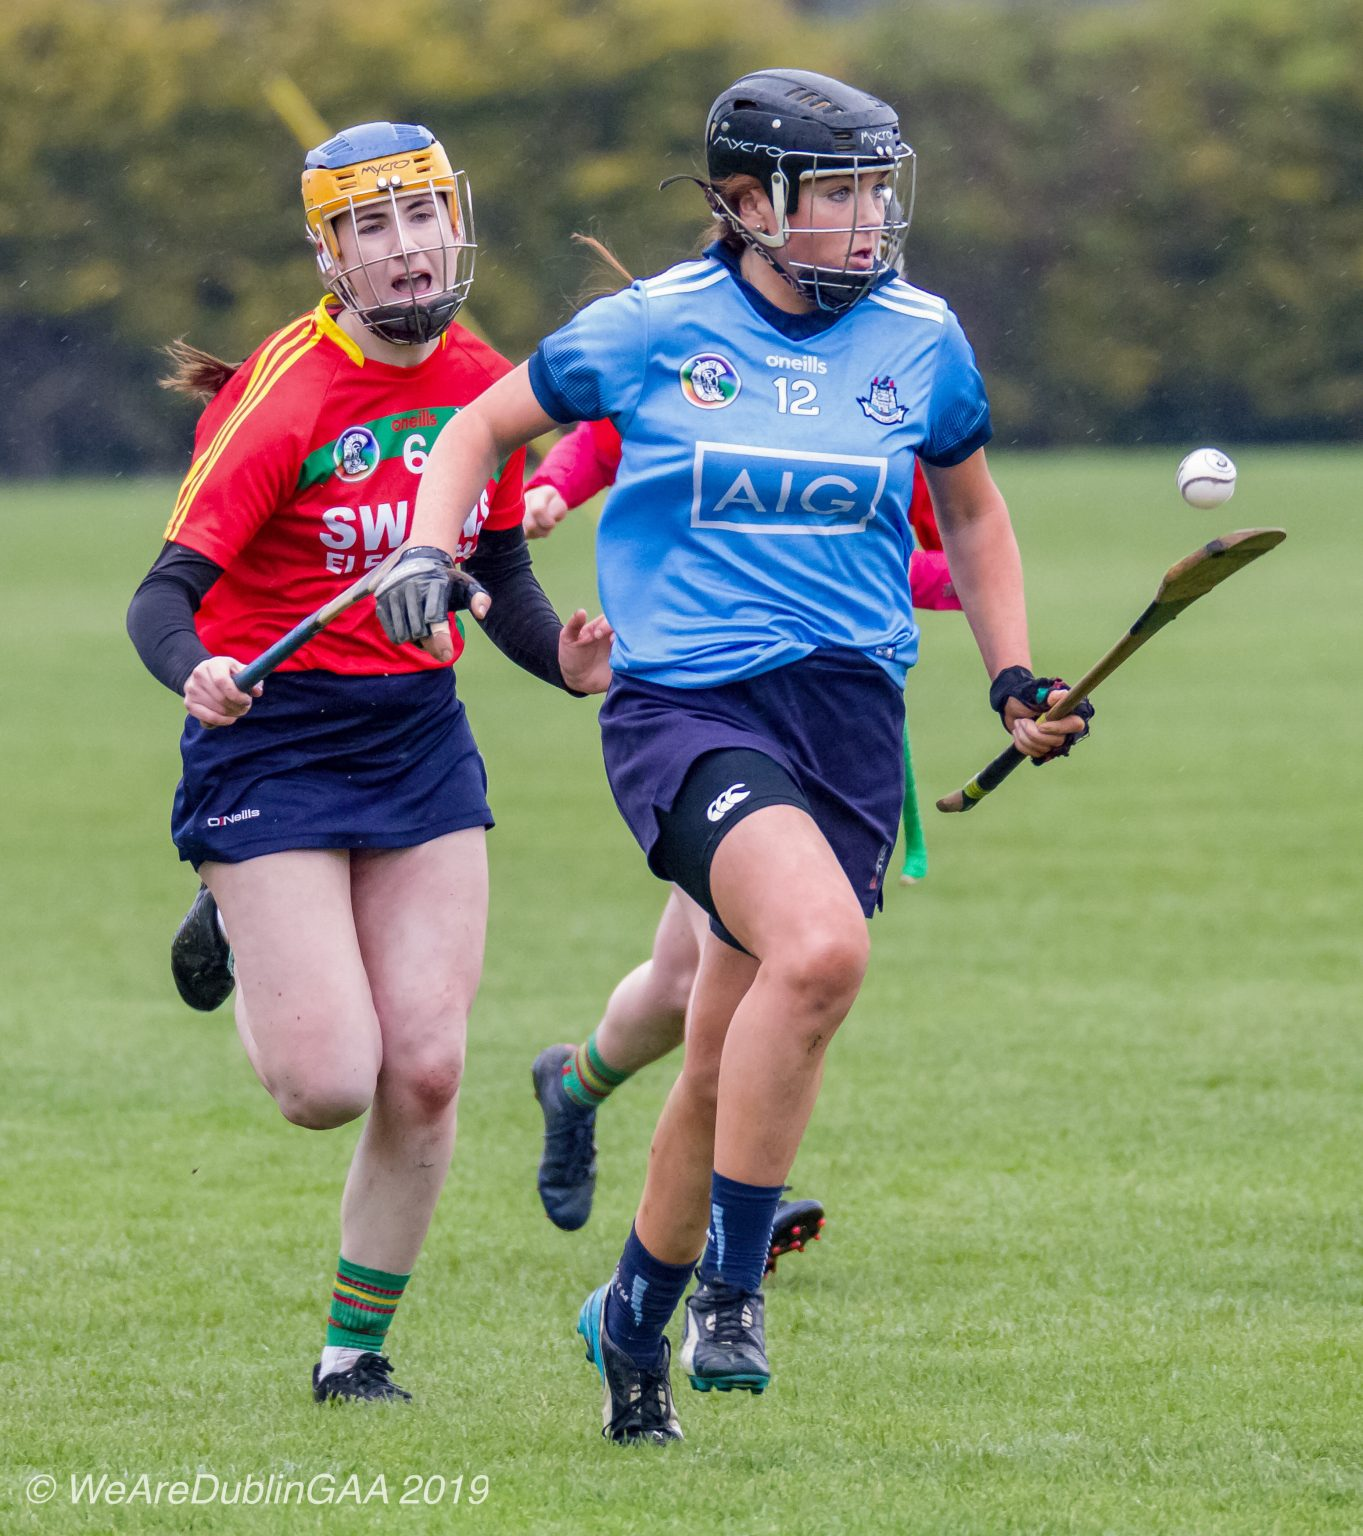 Dublin Camogie Intermediate Player In a sky blue jersey, navy skort and black helmet raced away from a Carlow player in a red jersey with green and yellow stripes across the front and sleeves, navy skort and black and white helmet.